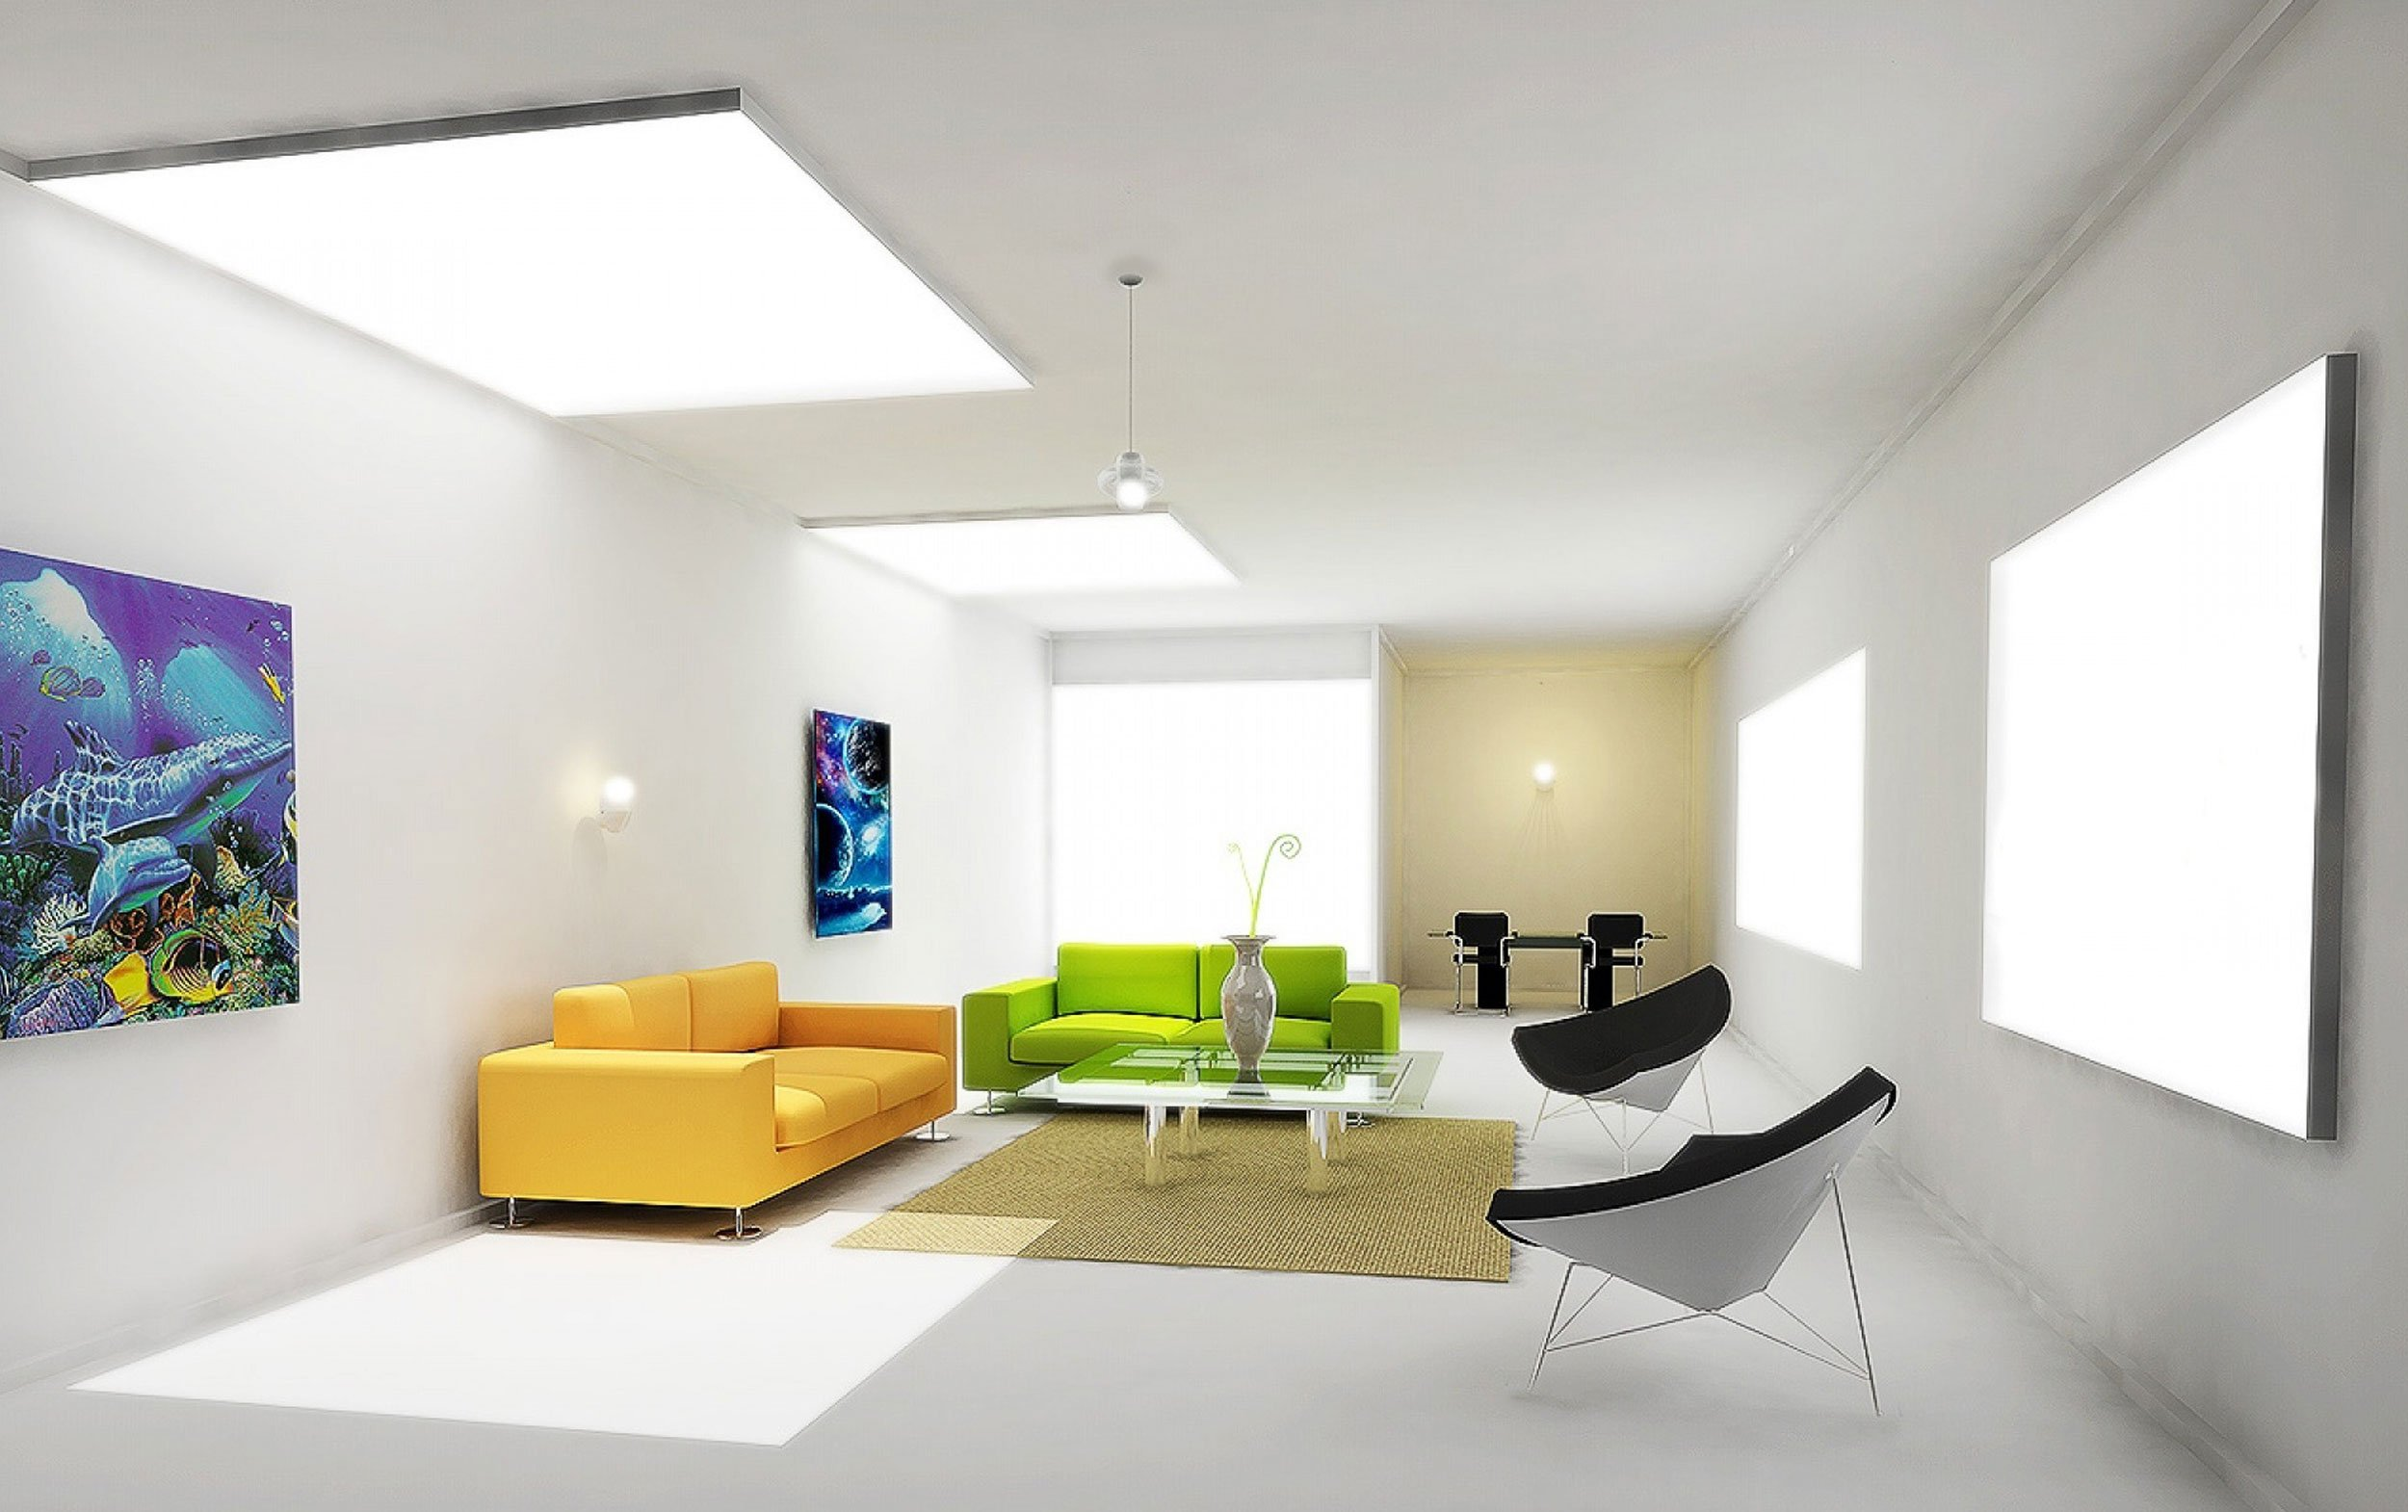 House Interior Furniture Design ~ Apartment condominium condo interior design room house